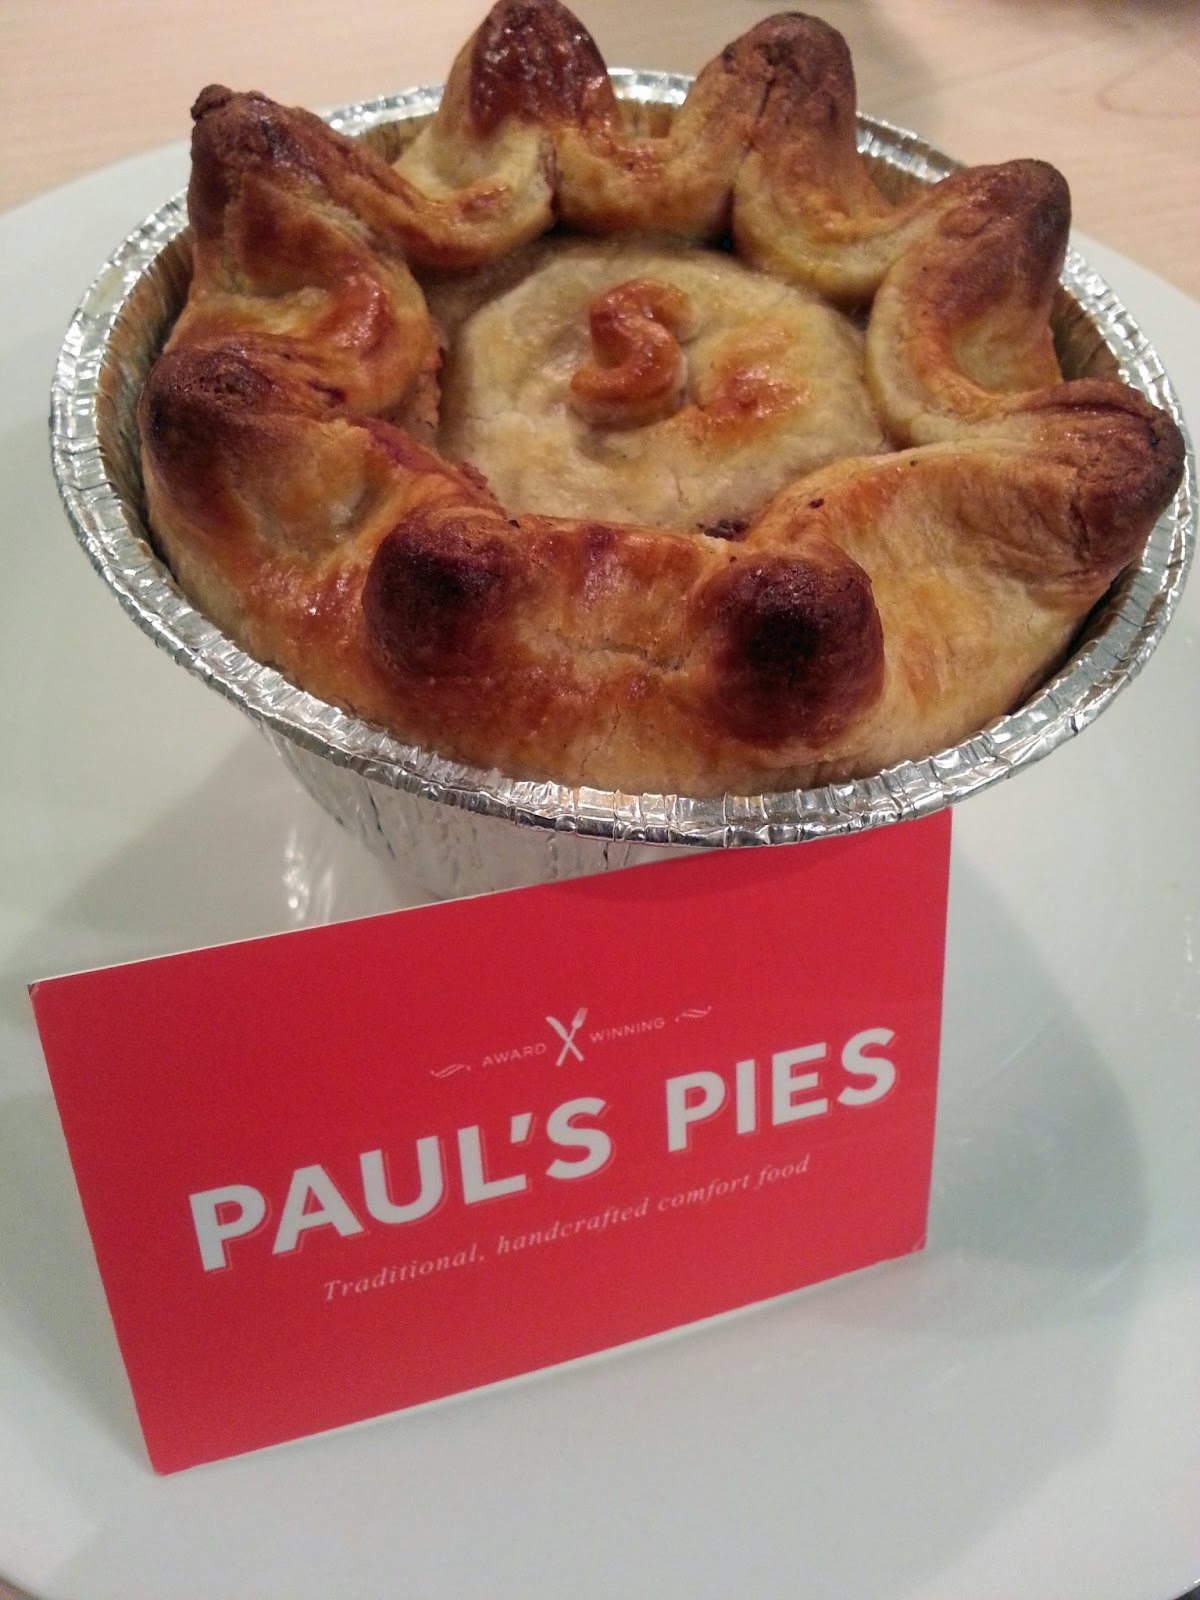 Currently Britain's Best Pie - Paul's Pies